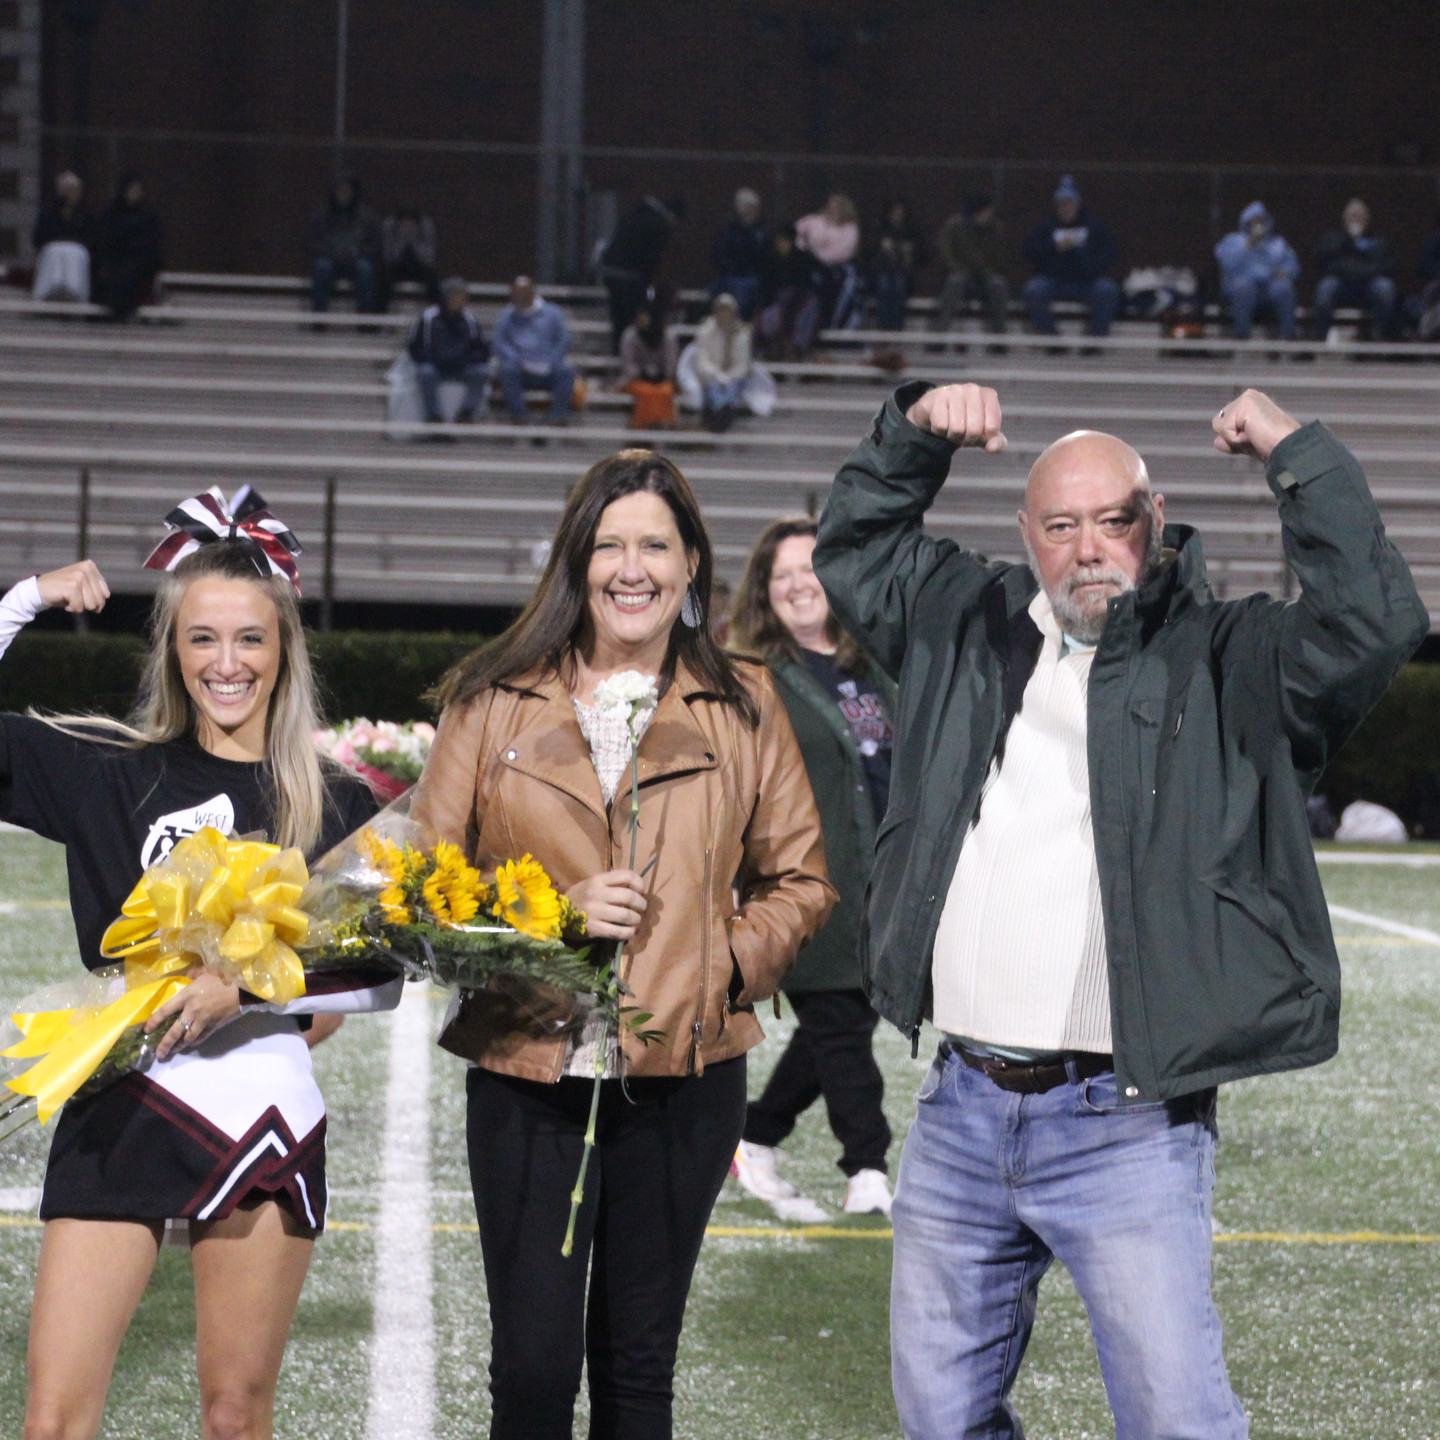 Alex Ailor escorted by Steve and Tamera Ailor